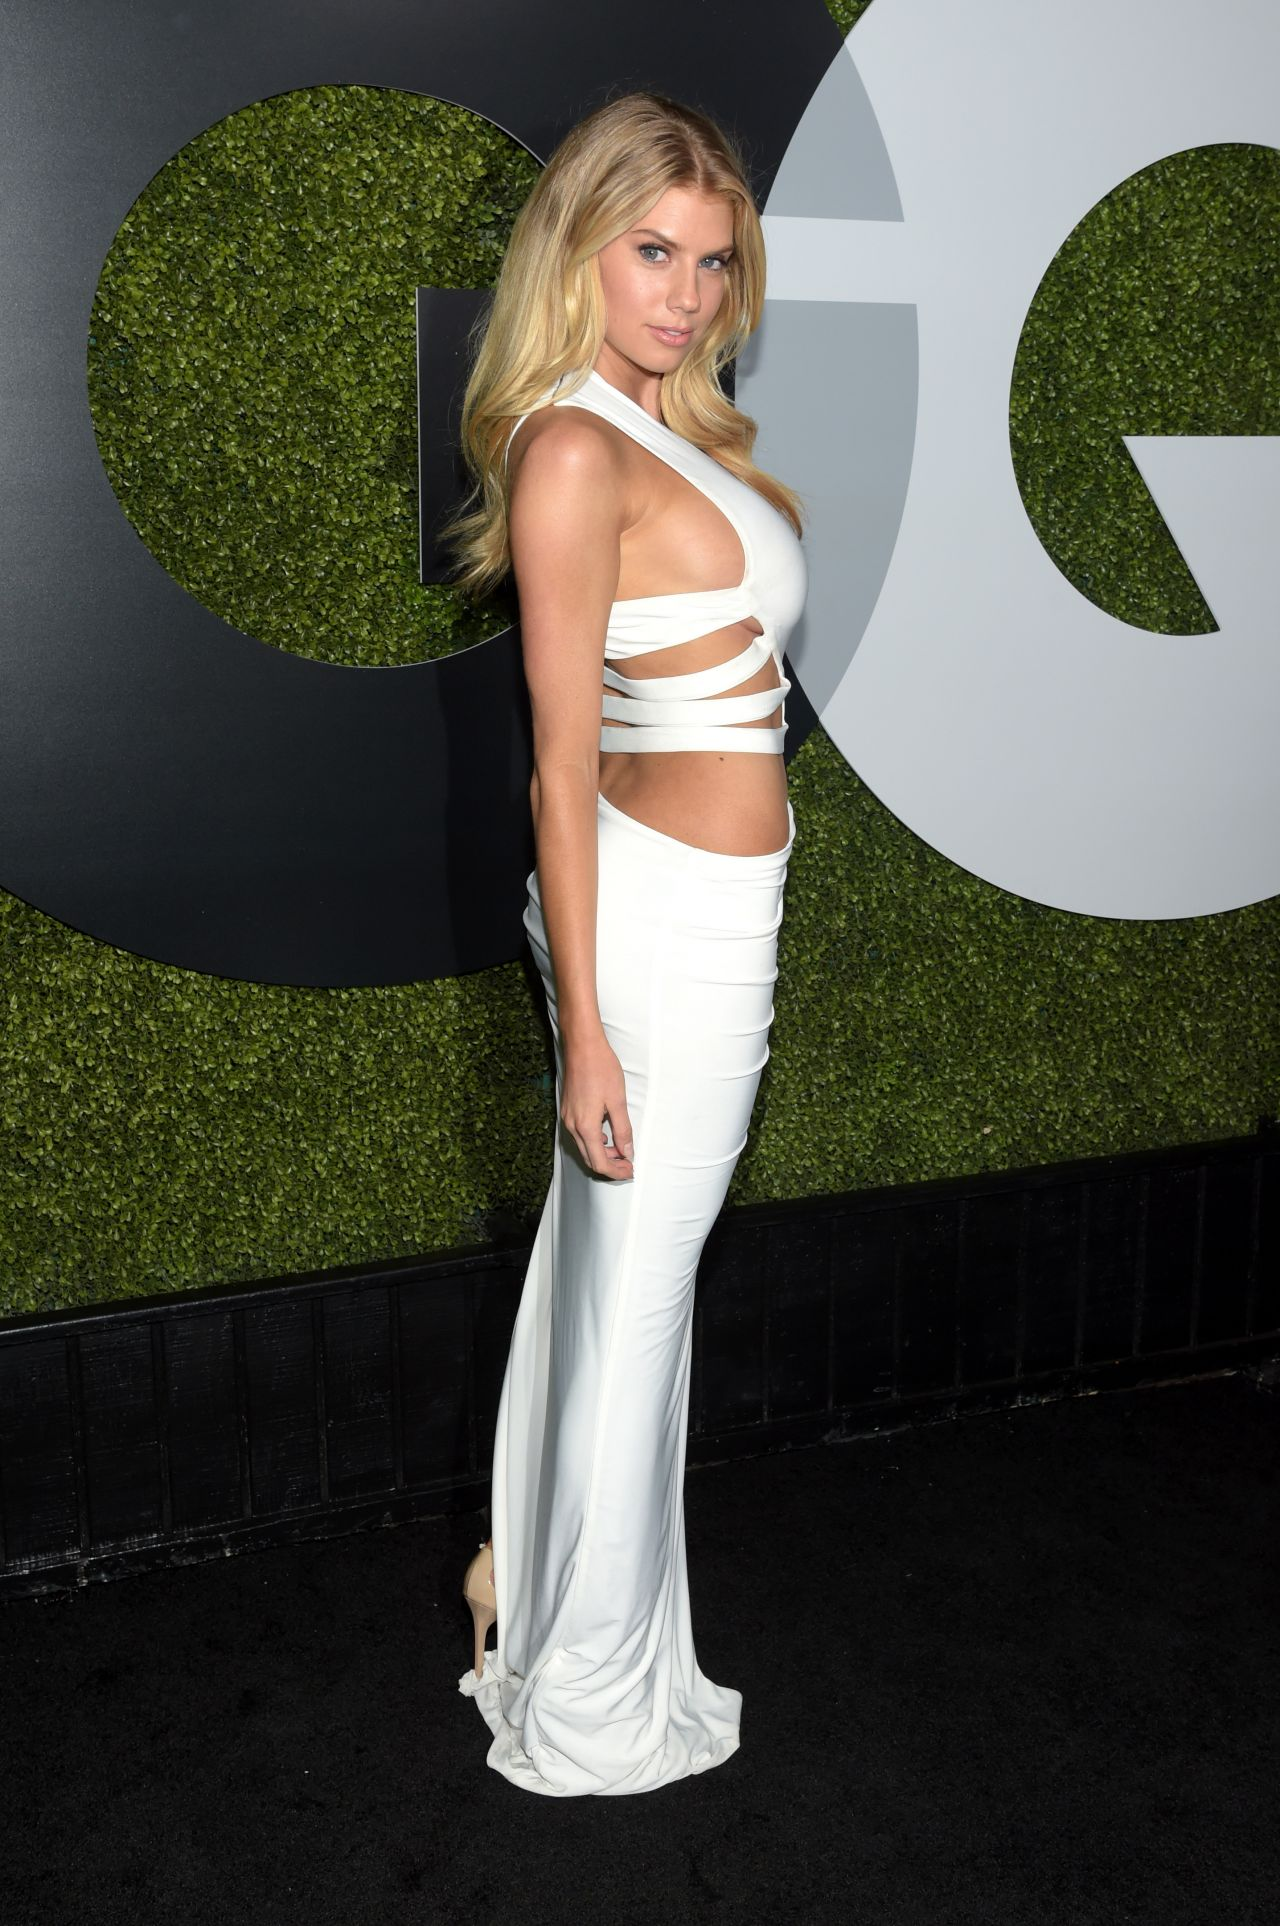 2015 Gq Men Of The Year Party In Los Angeles: 2015 GQ Men Of The Year Party In Los